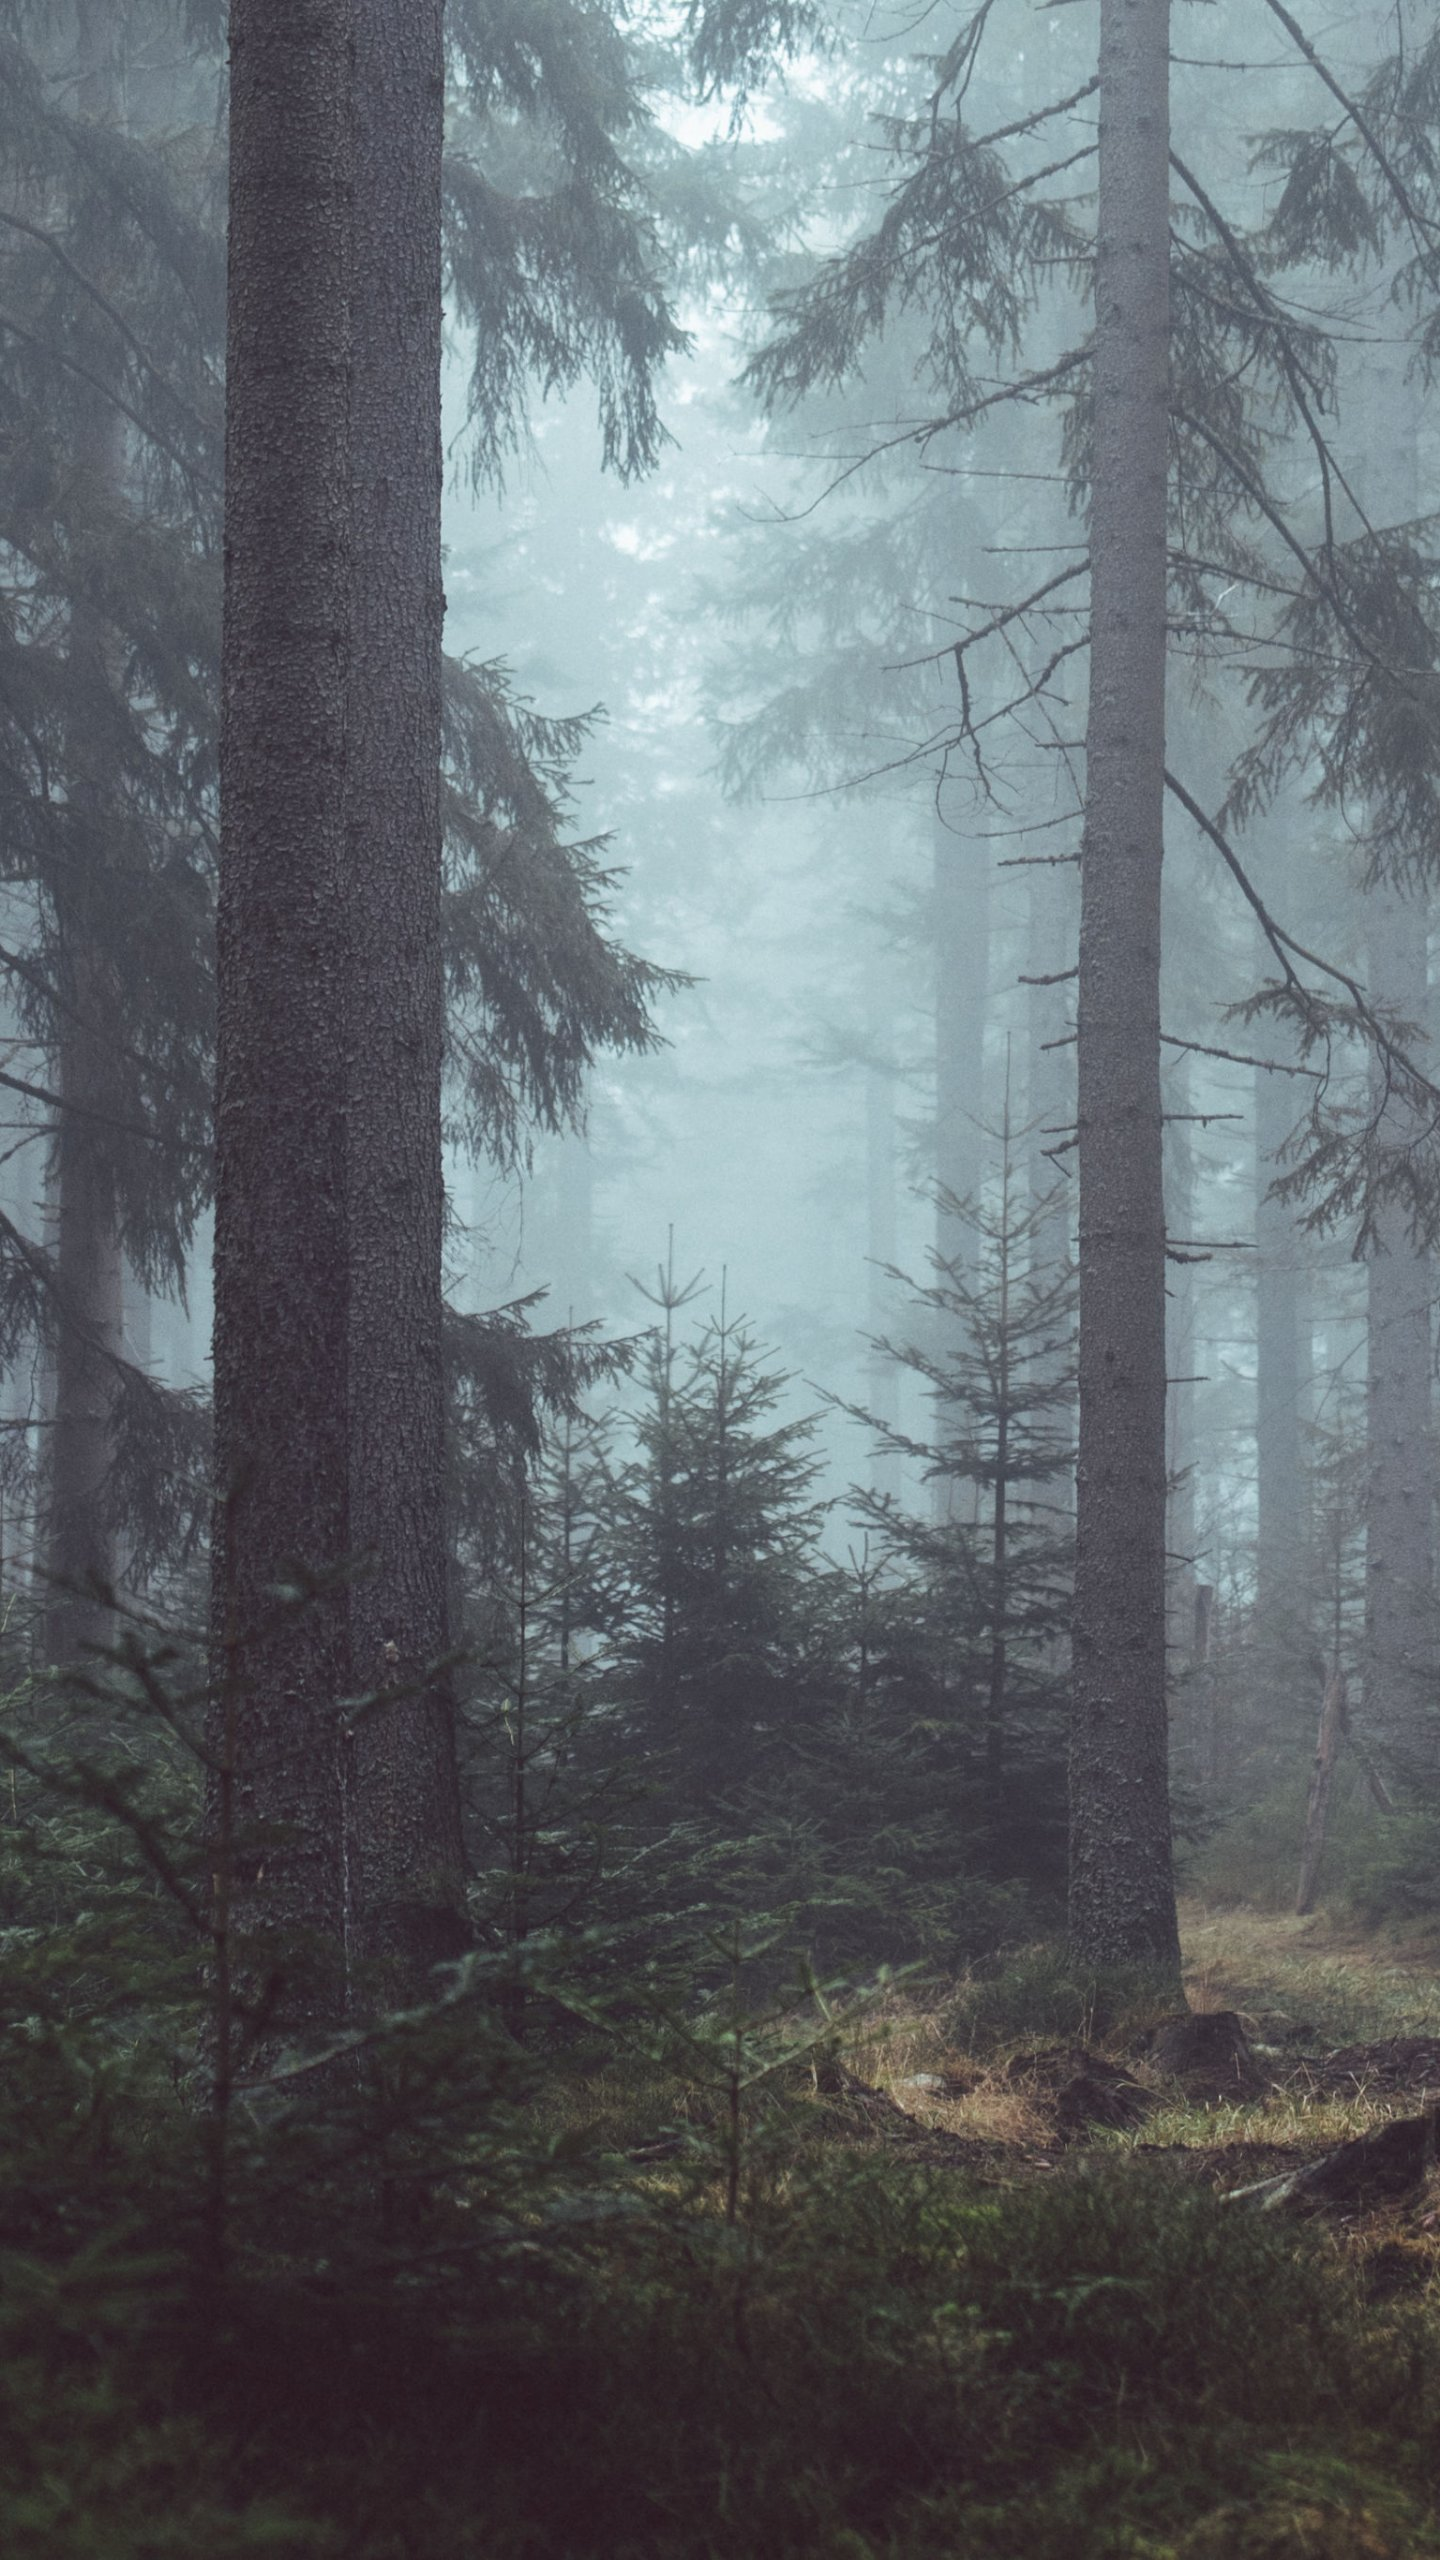 Misty Forest Wallpaper Iphone Android Desktop Backgrounds